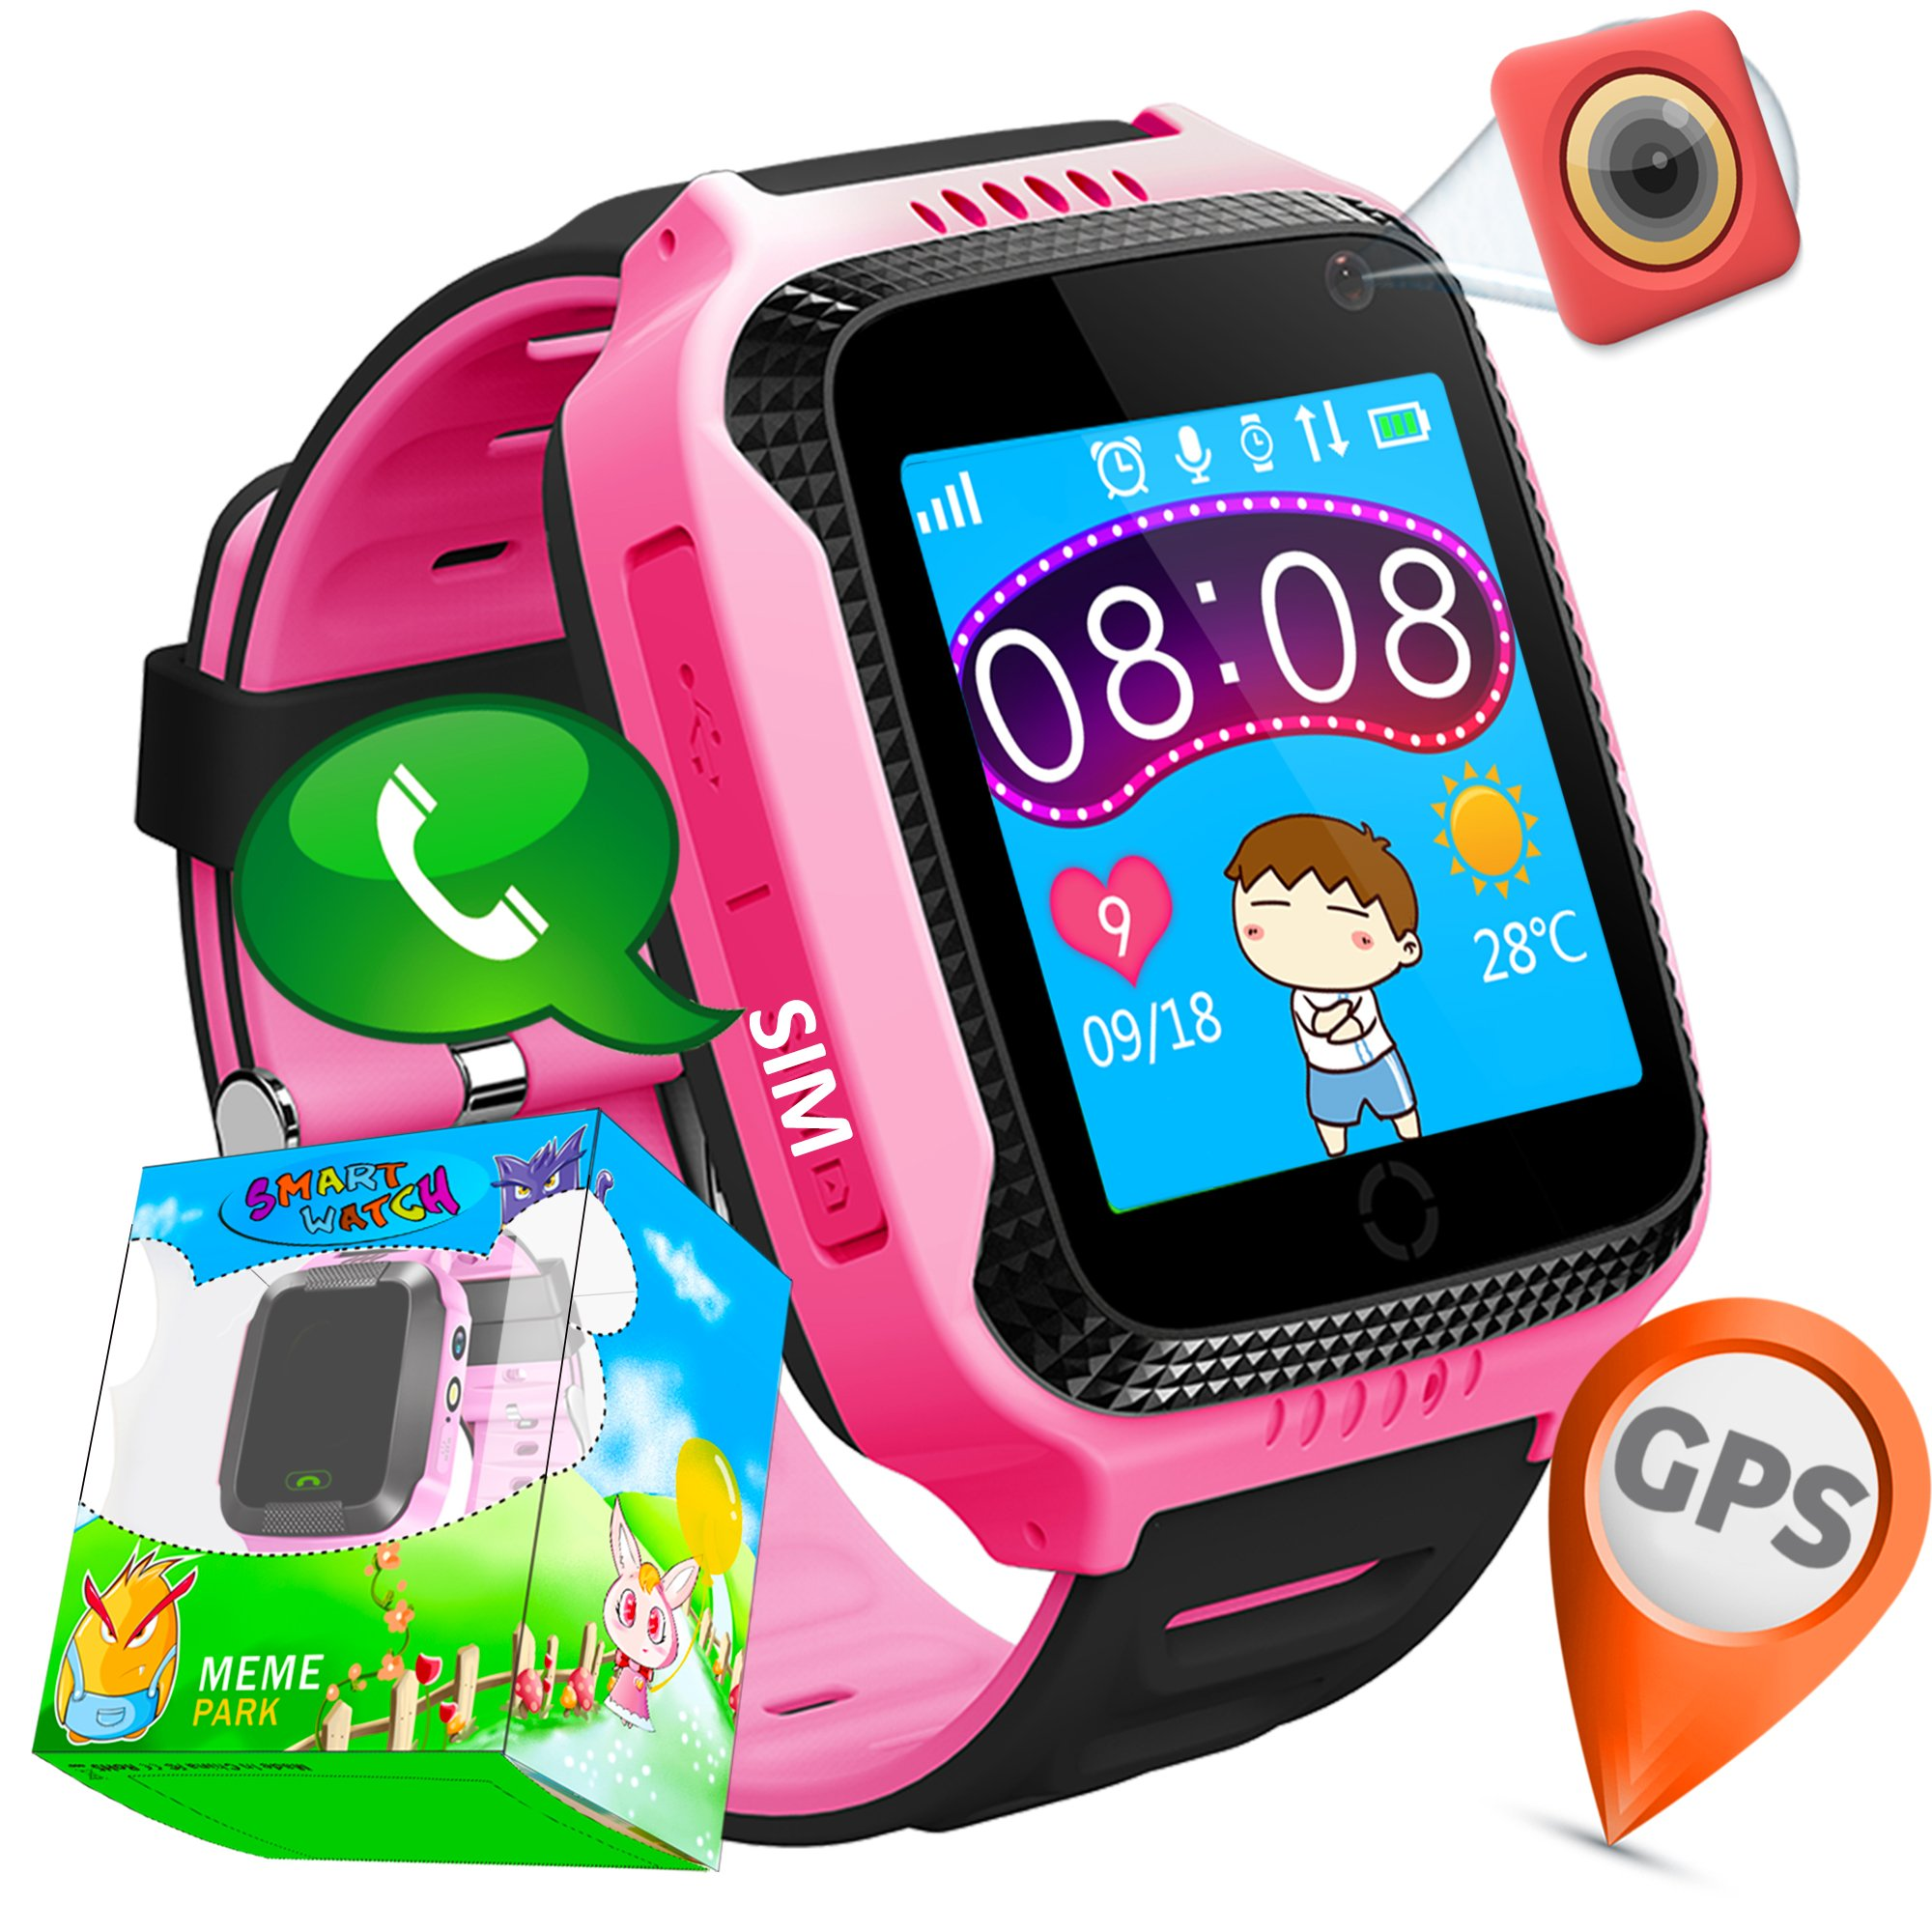 GPS Tracker for Kids-TURNMEON 1.44'' Smart Watch Phone for Kids Boys Girls with SIM Solt Pedometer SOS Camera Bracelet Stop Watch Travel Camping Summer Vacation Toys Birthday Gifts (Pink)